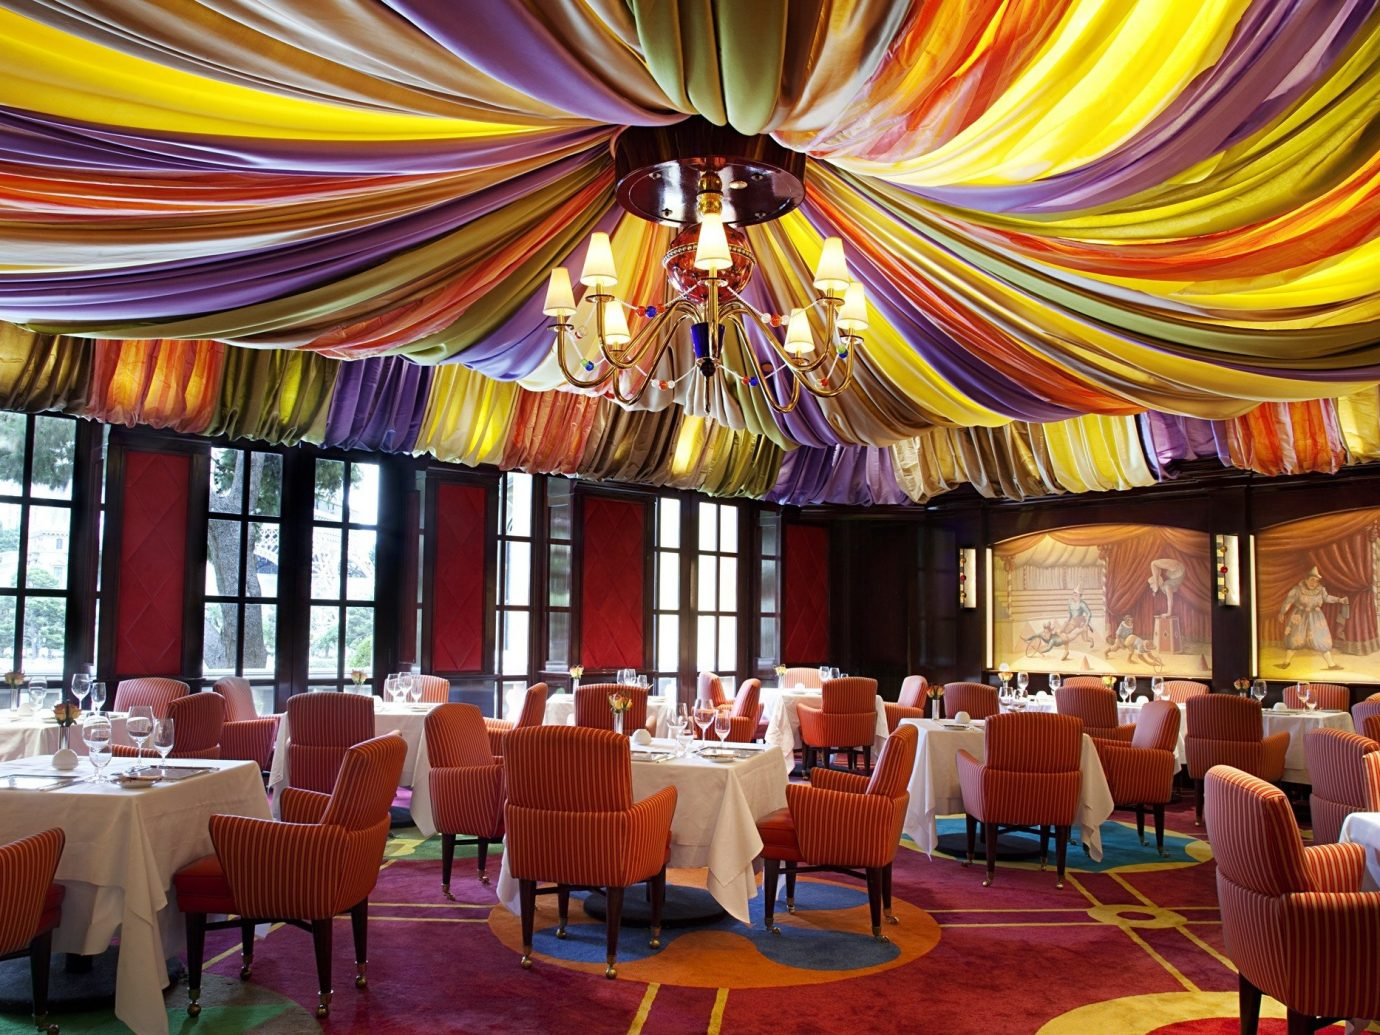 Food + Drink indoor floor chair room function hall ceiling restaurant interior design meal Resort ballroom area furniture